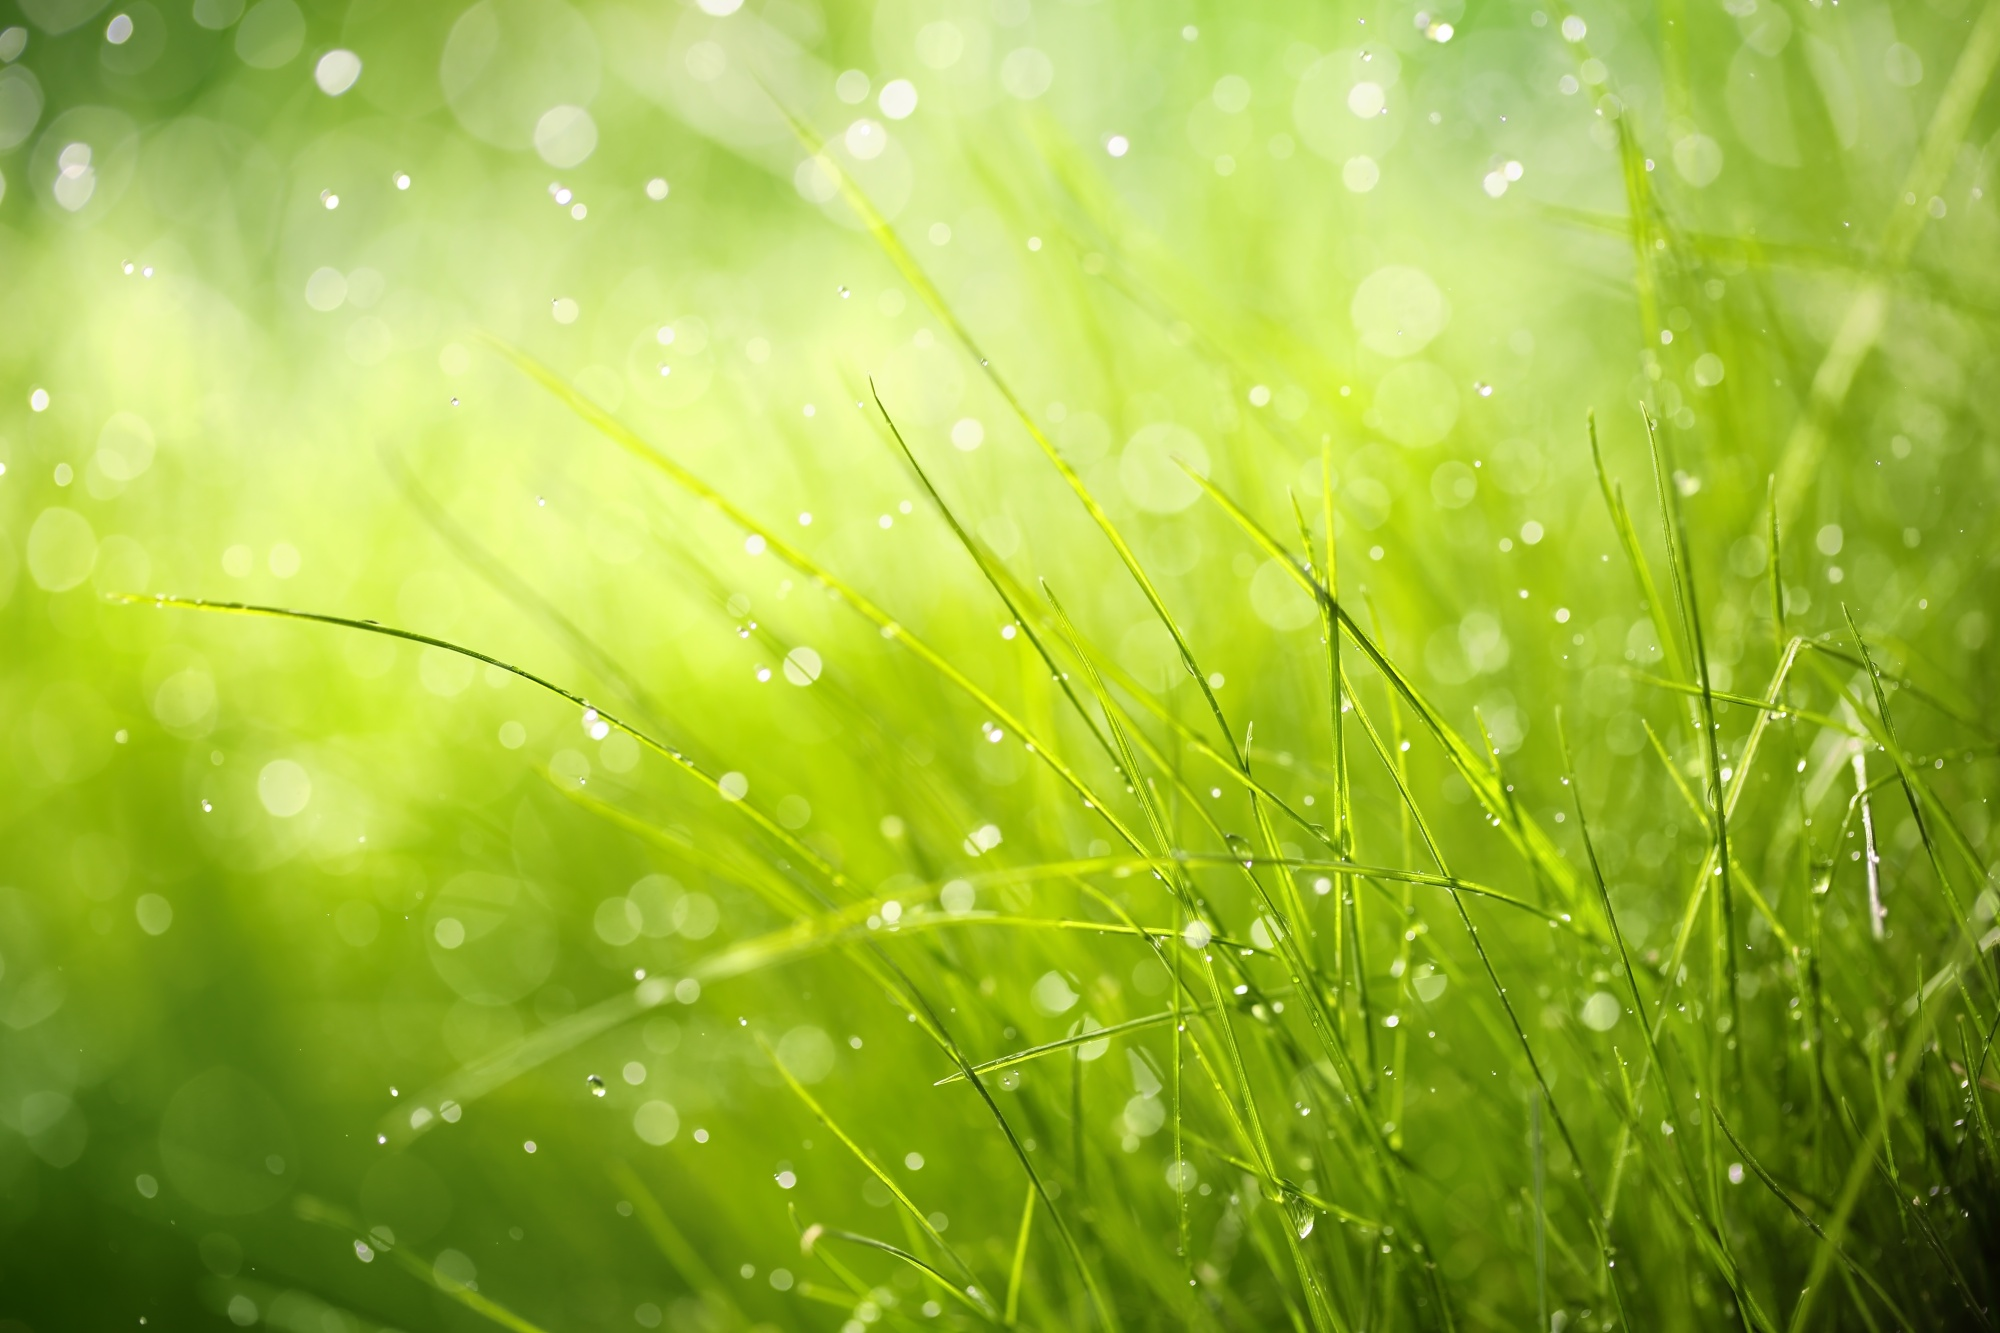 Morning dew on spring grass,Shallow Dof.